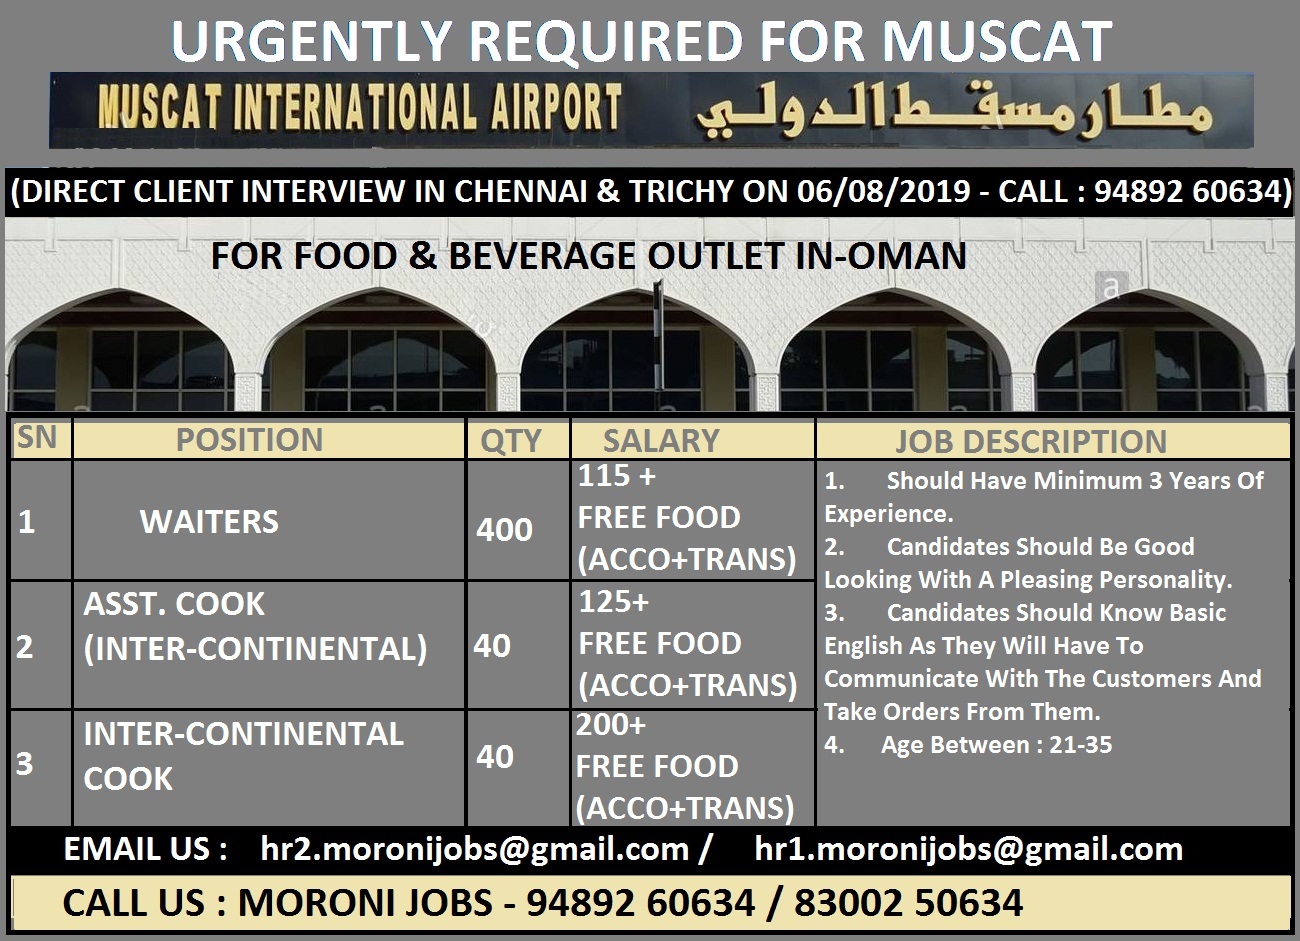 REQ FOR MUSCAT INTERNATIONAL AIRPORT